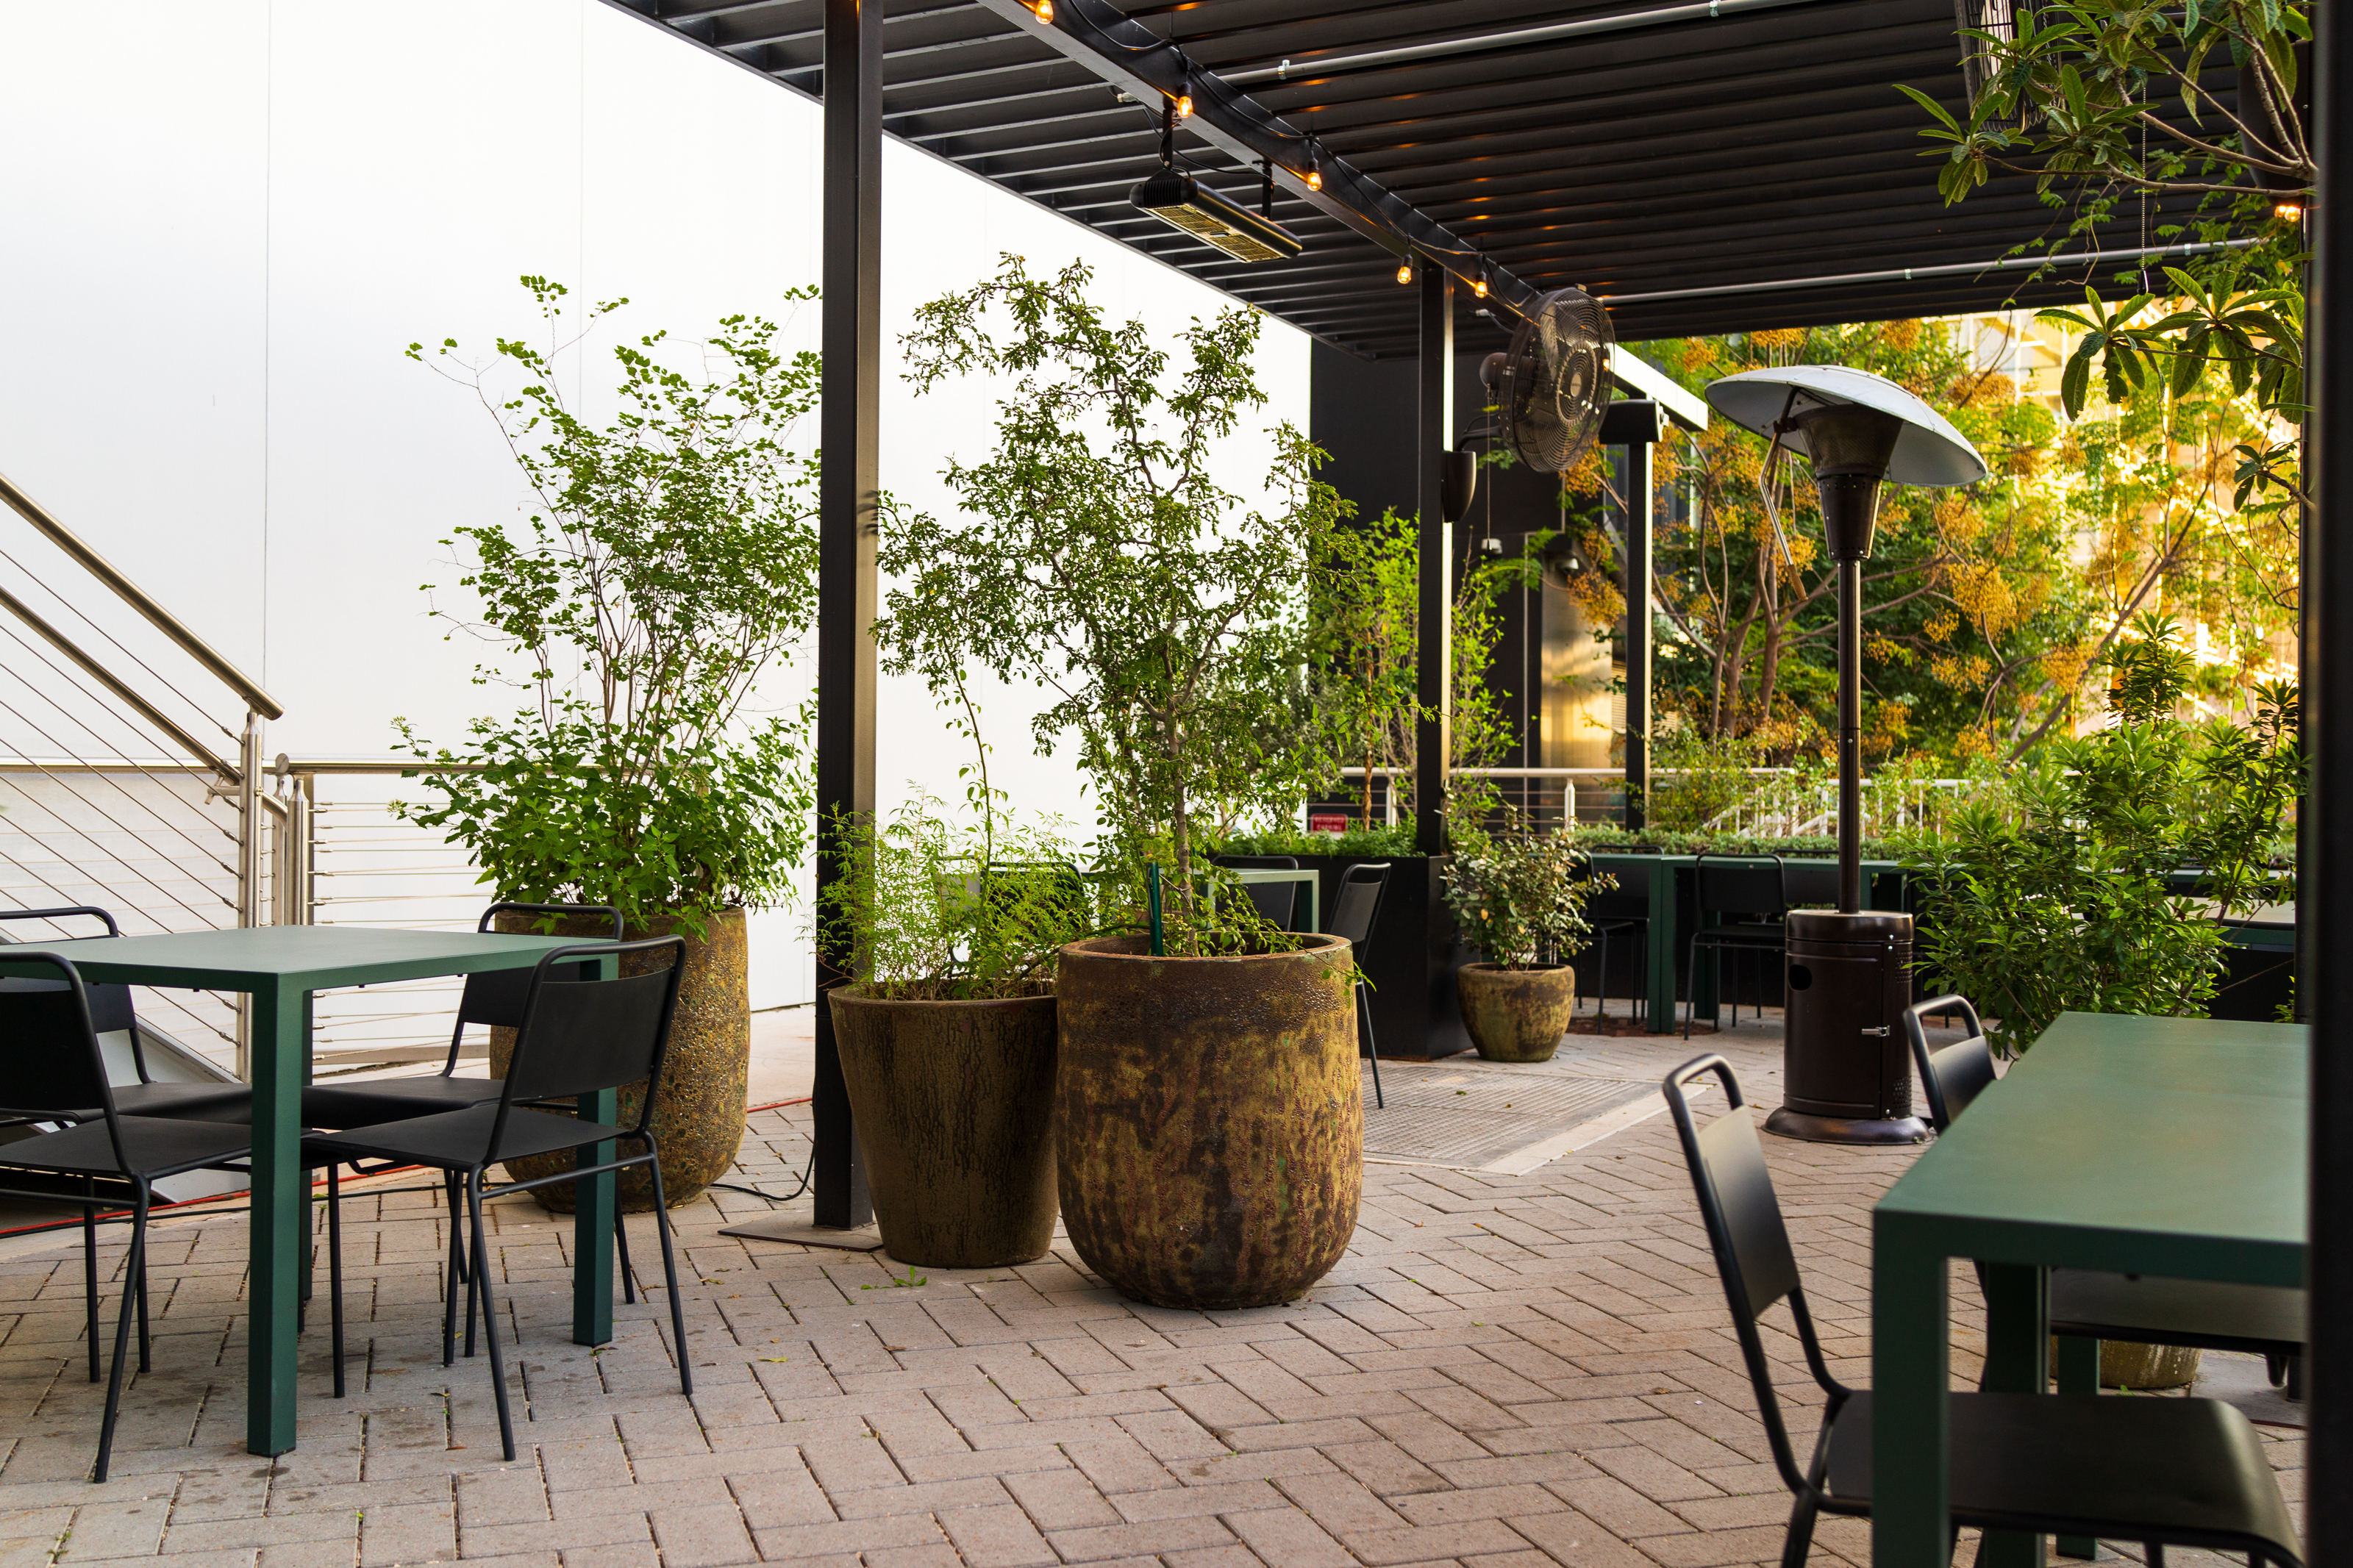 The Best Outdoor Patios And Backyards At Austin Restaurants And Bars Austin The Infatuation